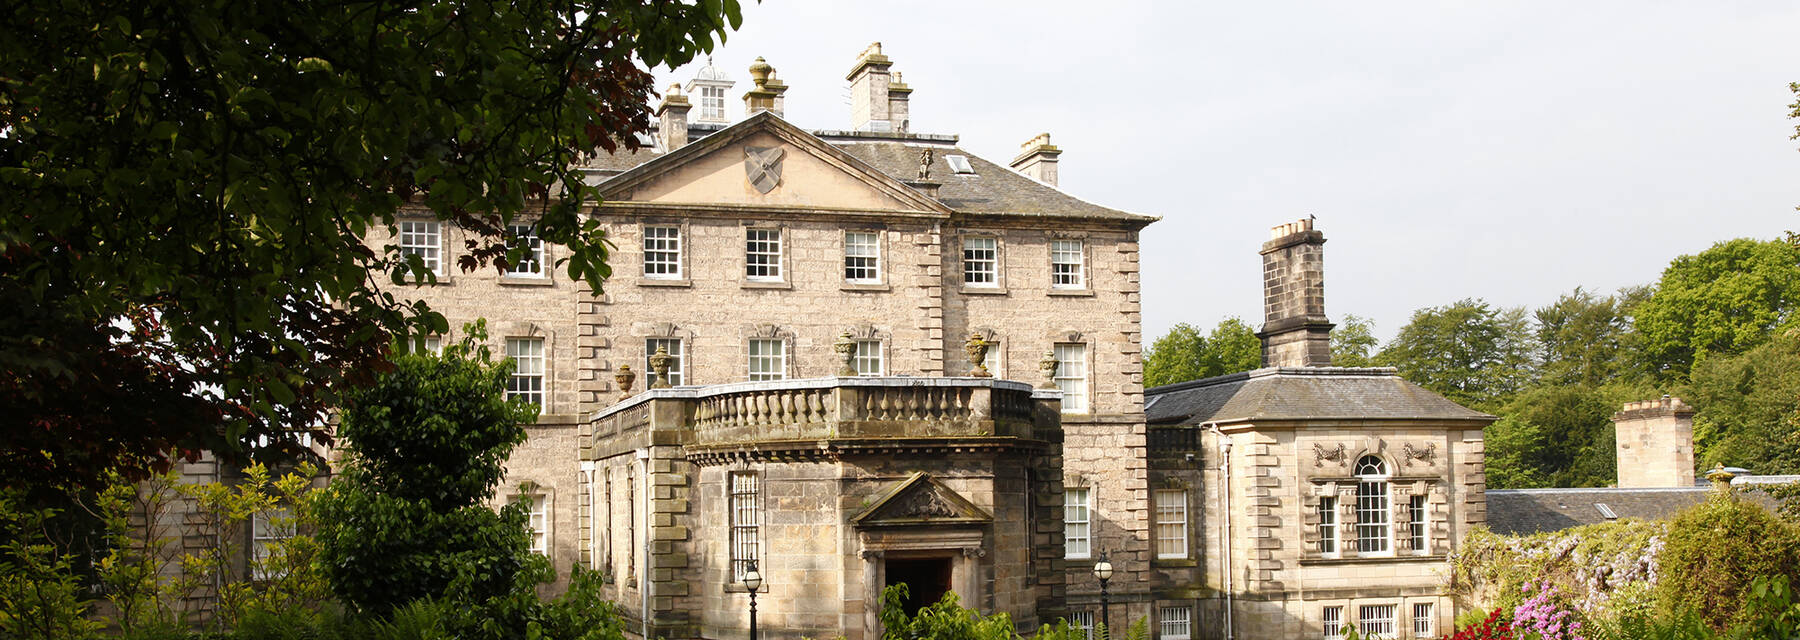 A view of the entrance to Pollok House, seen from the surrounding woodland.